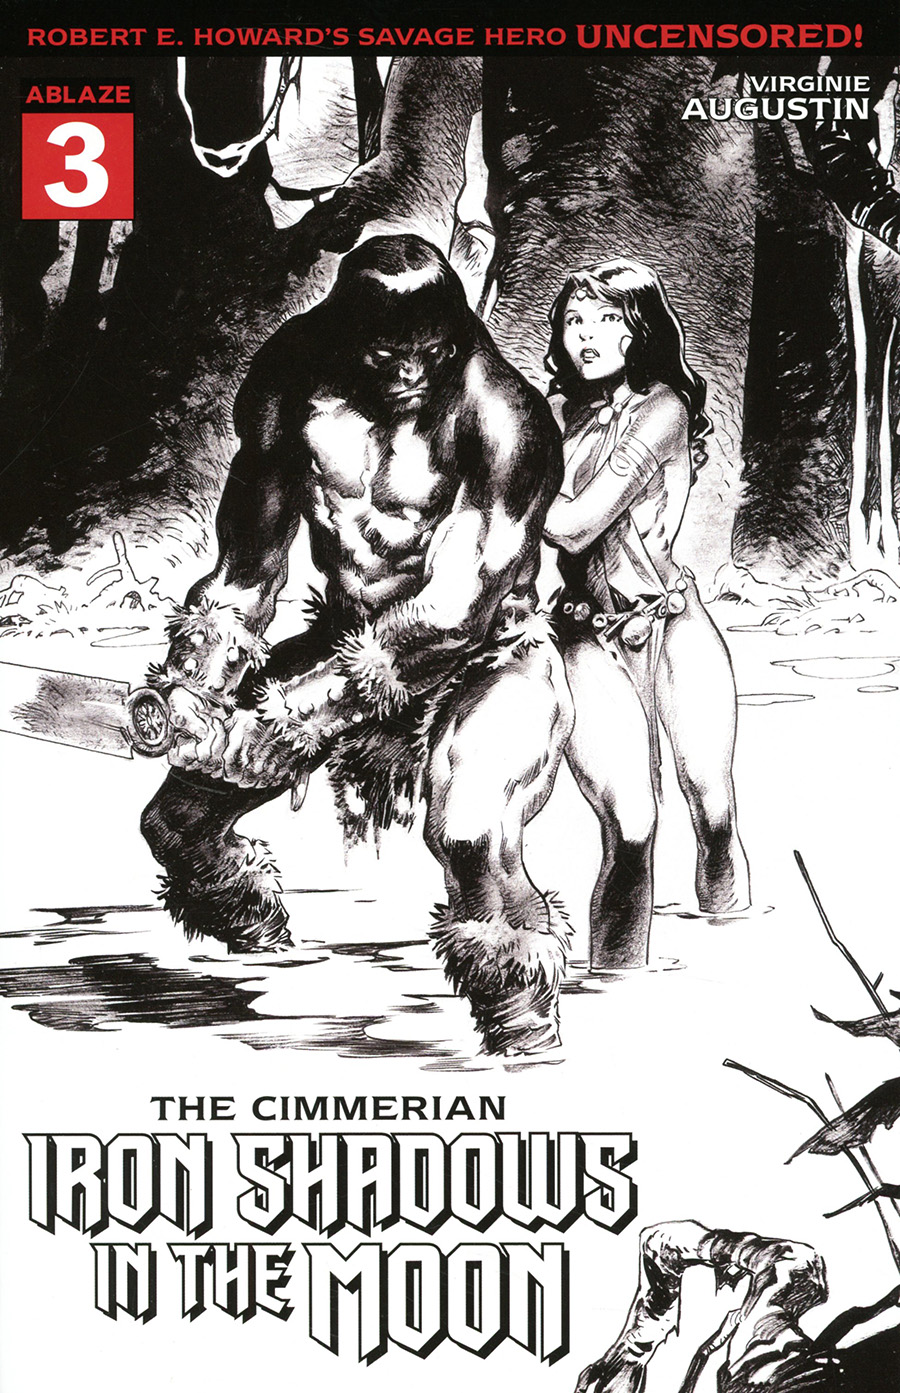 Cimmerian Iron Shadows In The Moon #3 Cover B Variant Virginie Augustin Cover